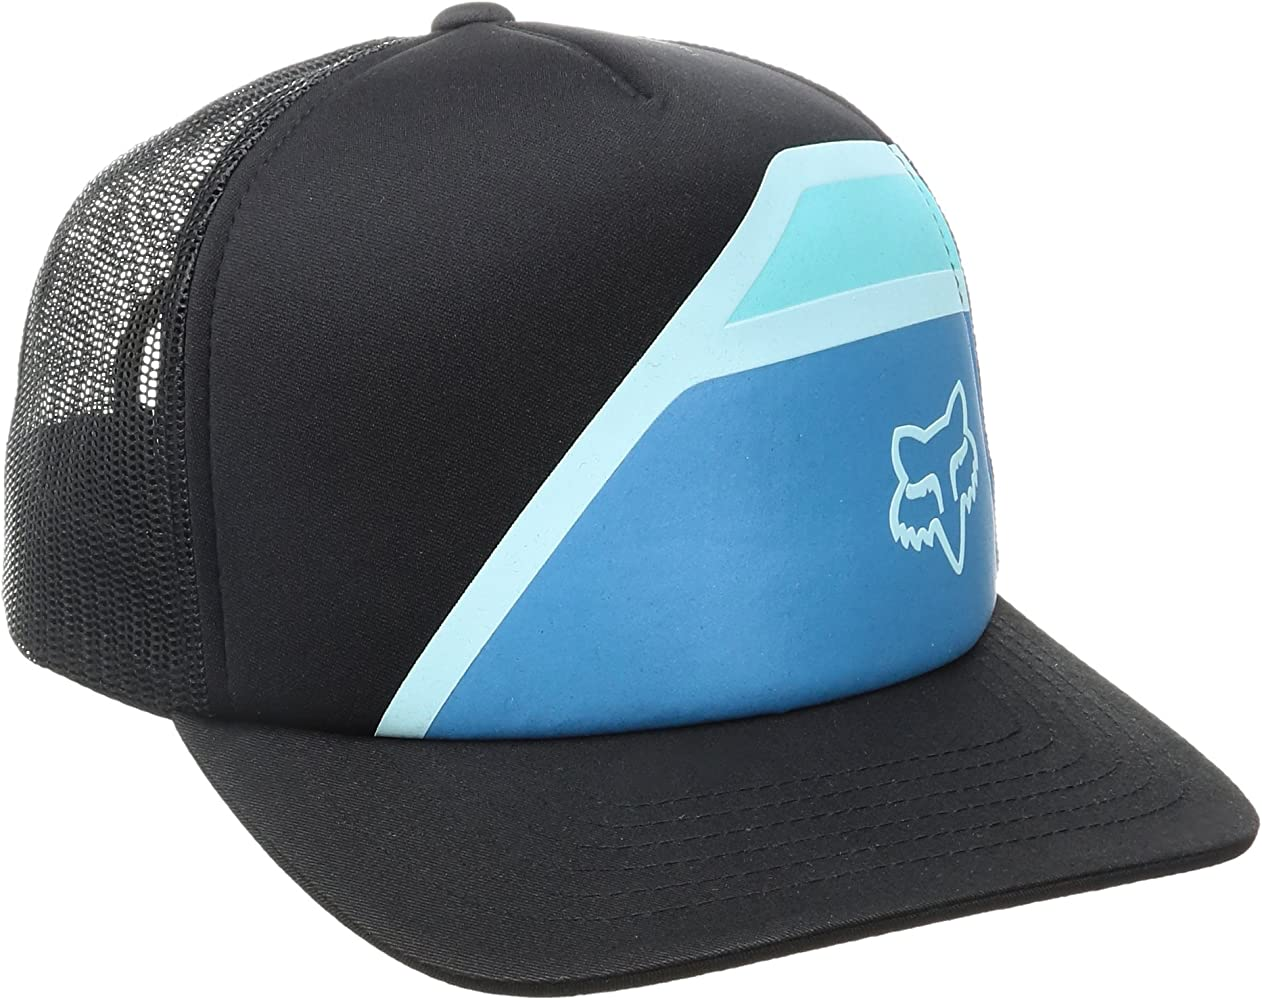 Gorra Fox [Seca Stripe] Azul, One Size: Amazon.es: Ropa y accesorios